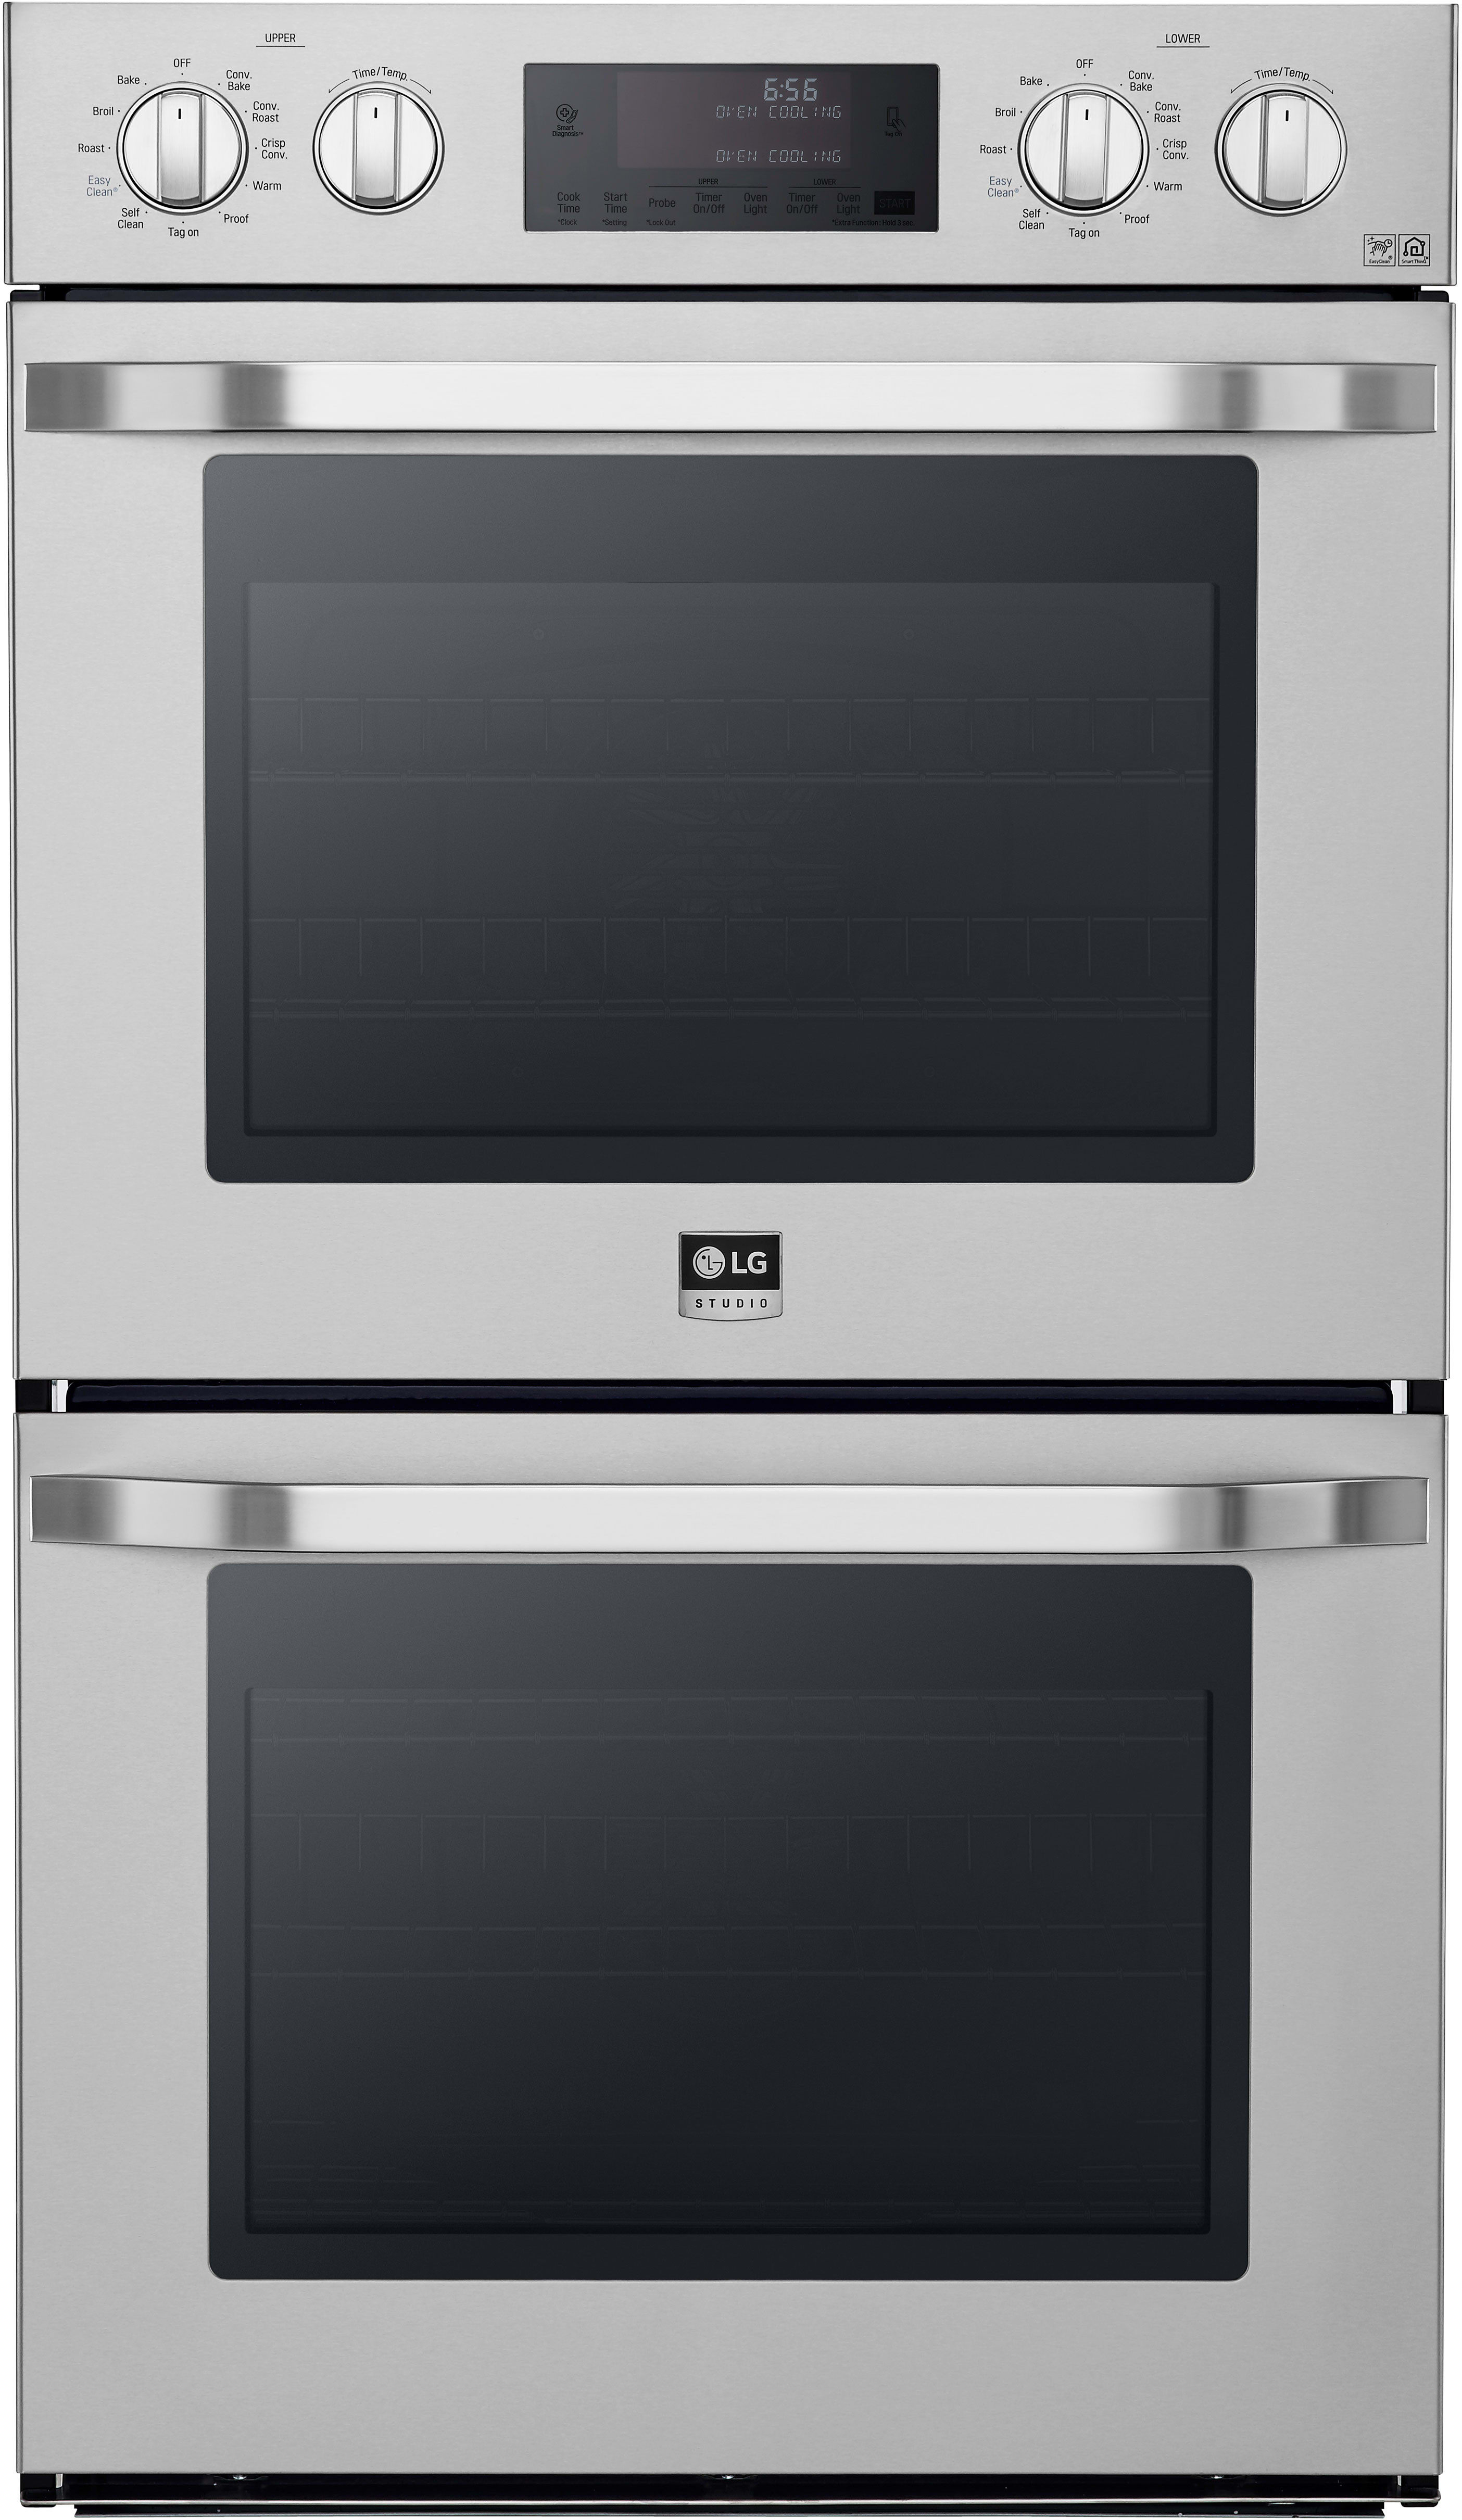 LG LSWD306ST 30 Inch Double Electric Wall Oven with Convectionc